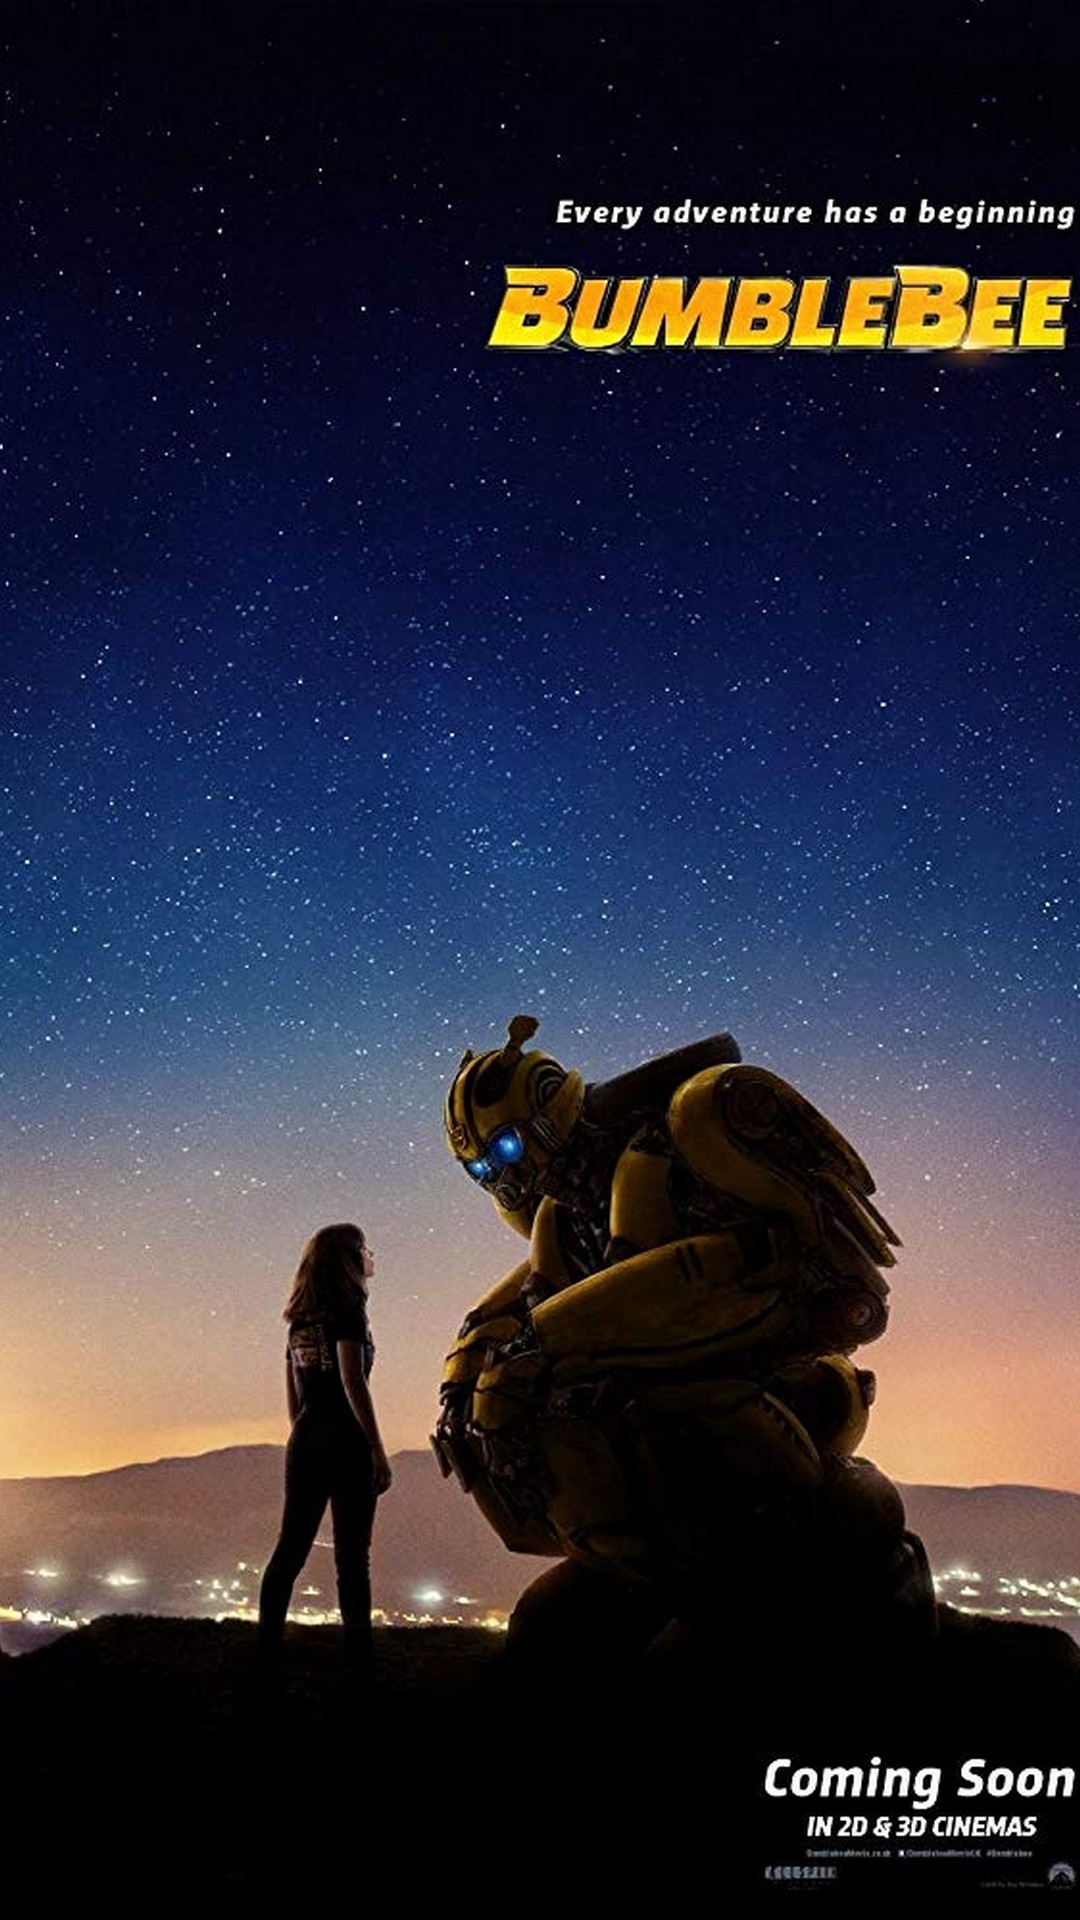 Bumblebee Mobile Wallpaper With Resolution Pixel - Bumblebee Wallpaper For Mobile - HD Wallpaper